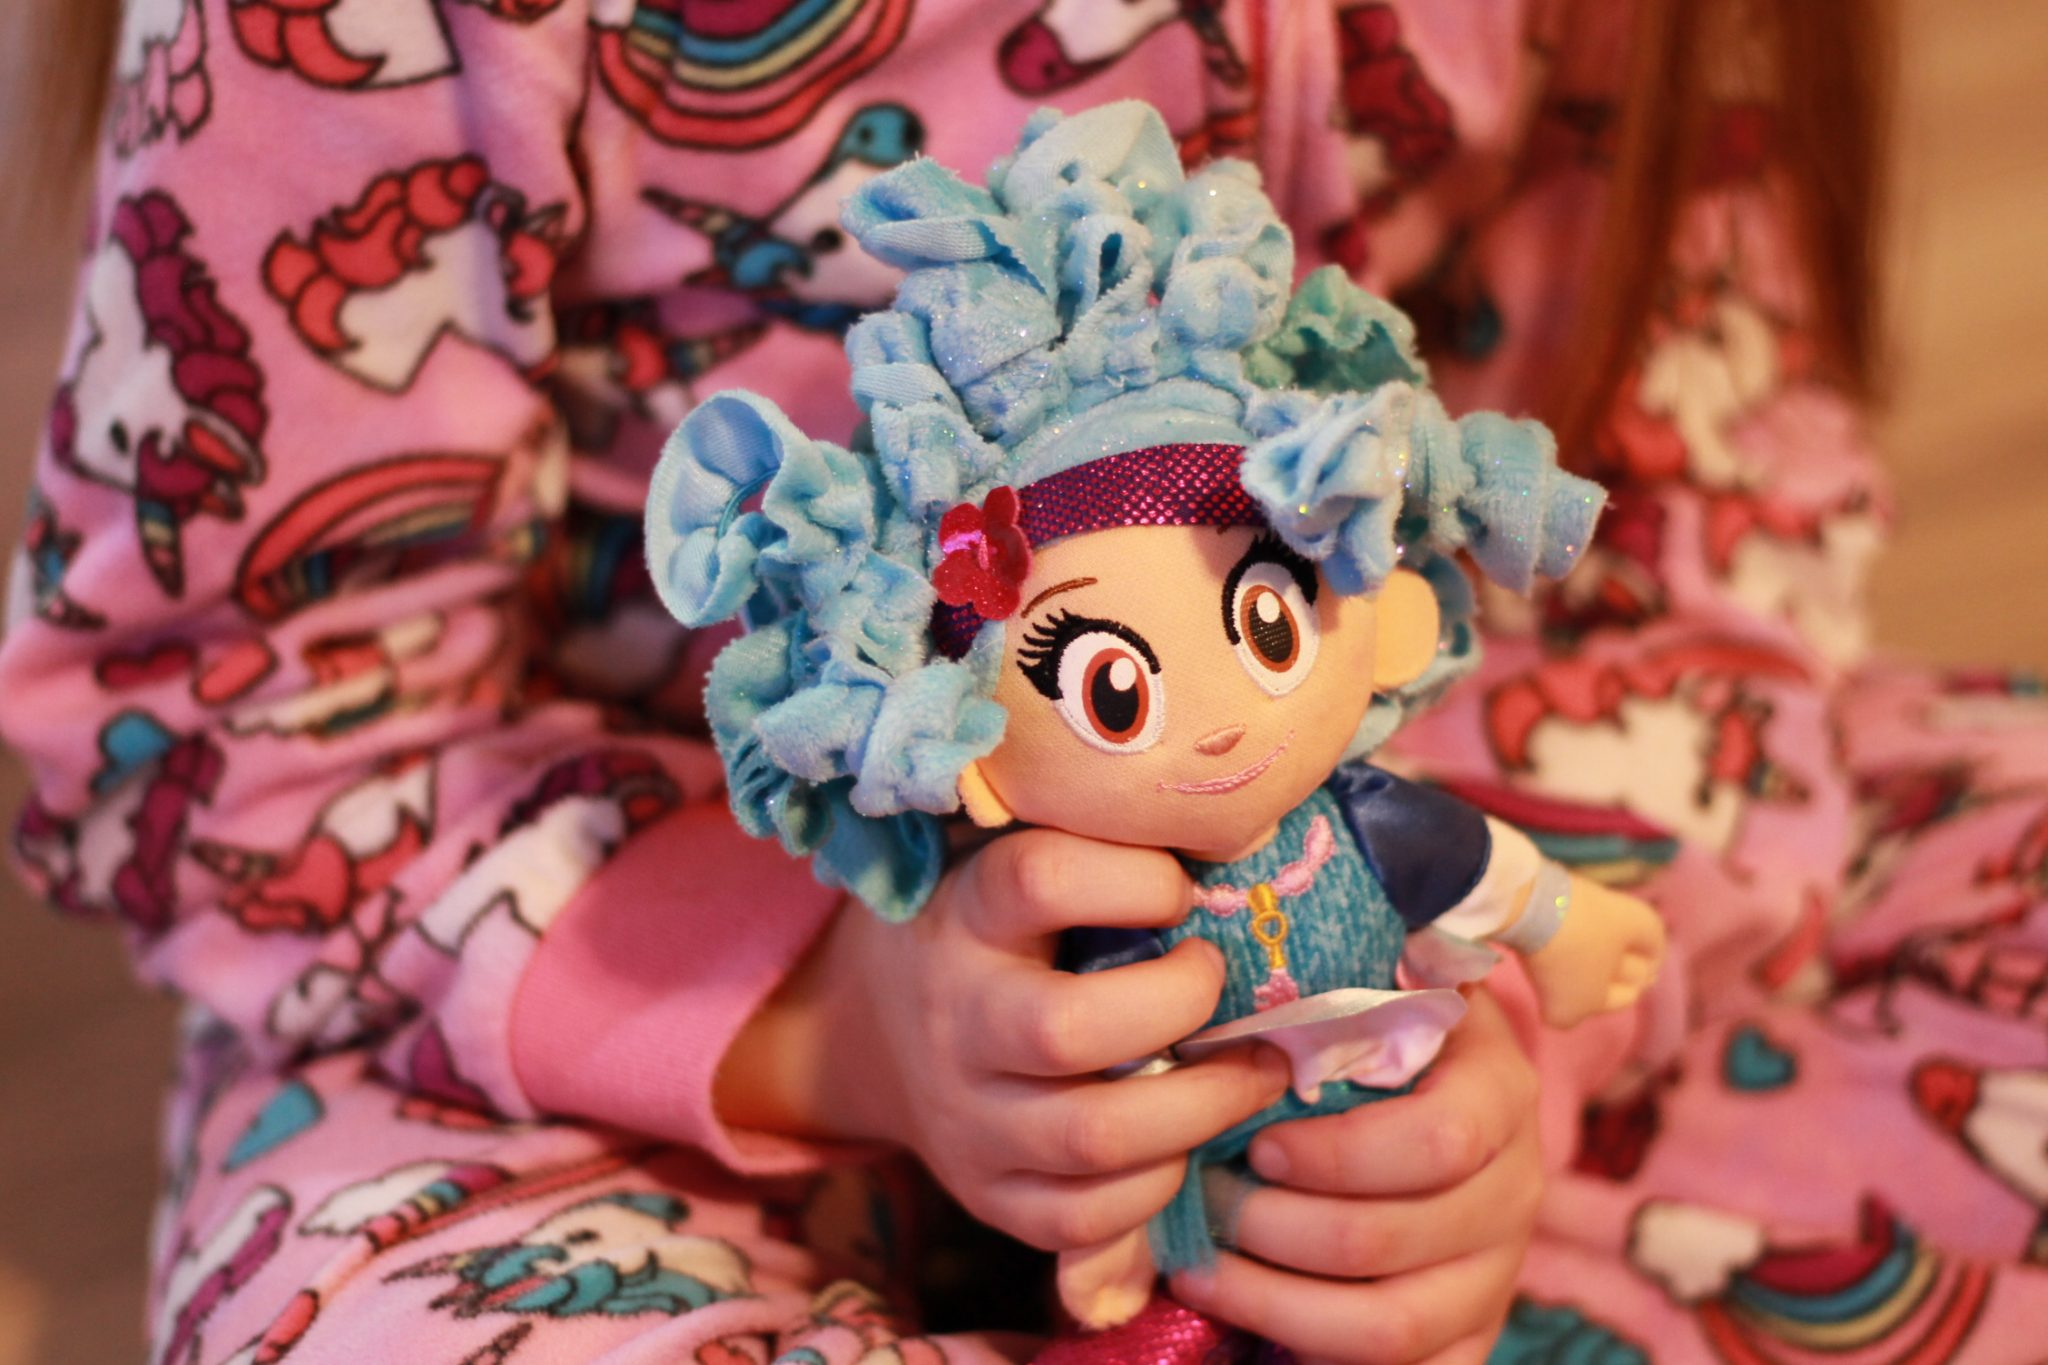 6ba57d1f492 Luna Petunia  new Amazia inspired toys for tiny fans  review  - British  Columbia Mom